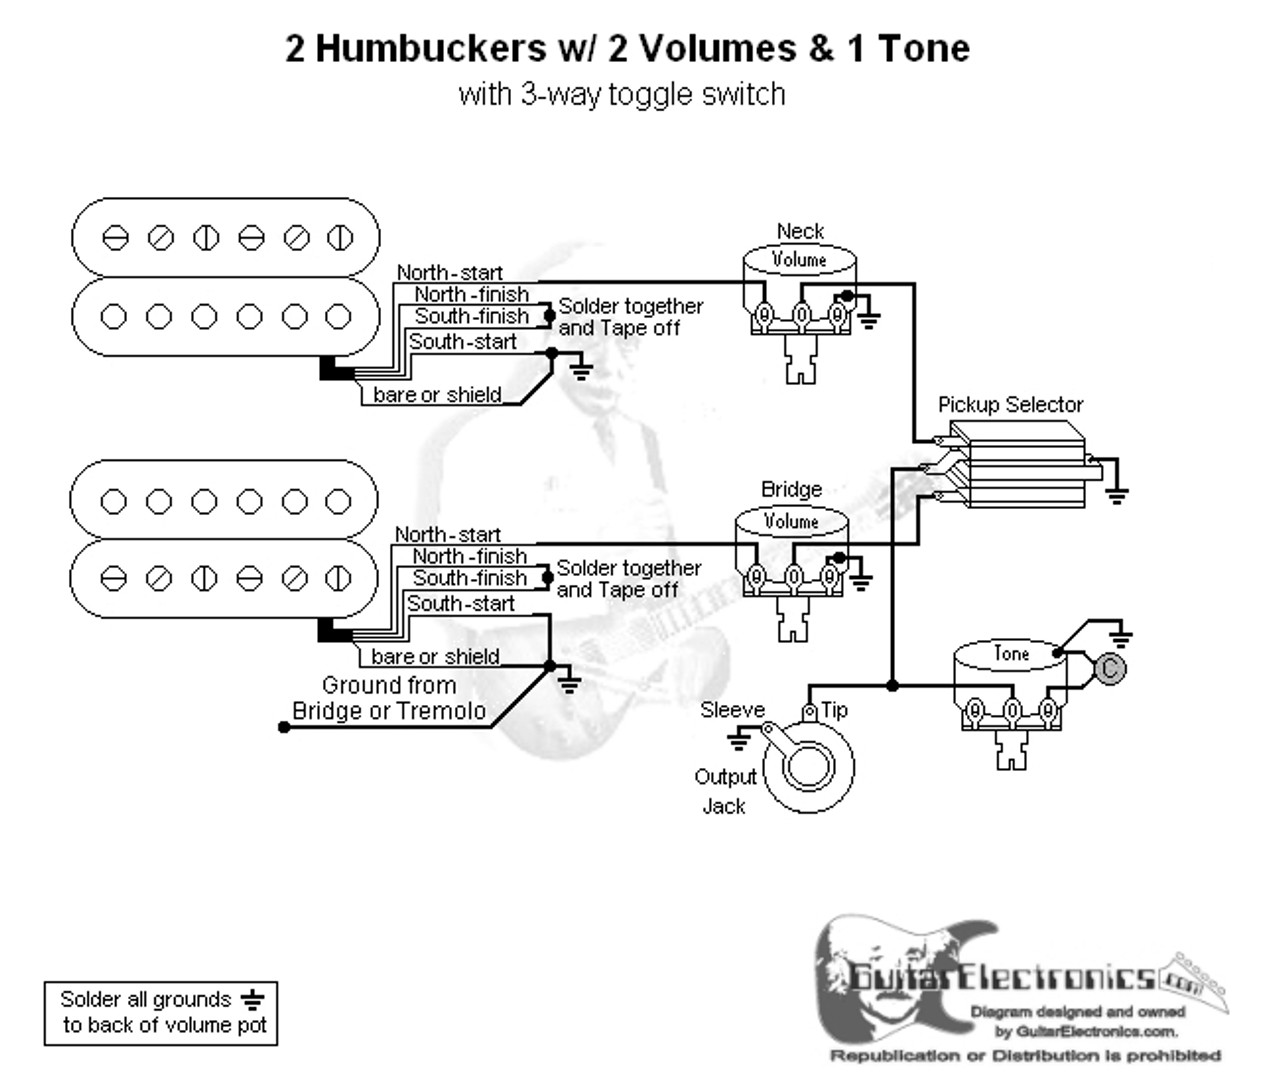 hight resolution of electric guitar diagram wire 2 humbucker 1 tones 2 volumes wiring wiring diagram 2 pickup 3 way switch one volume